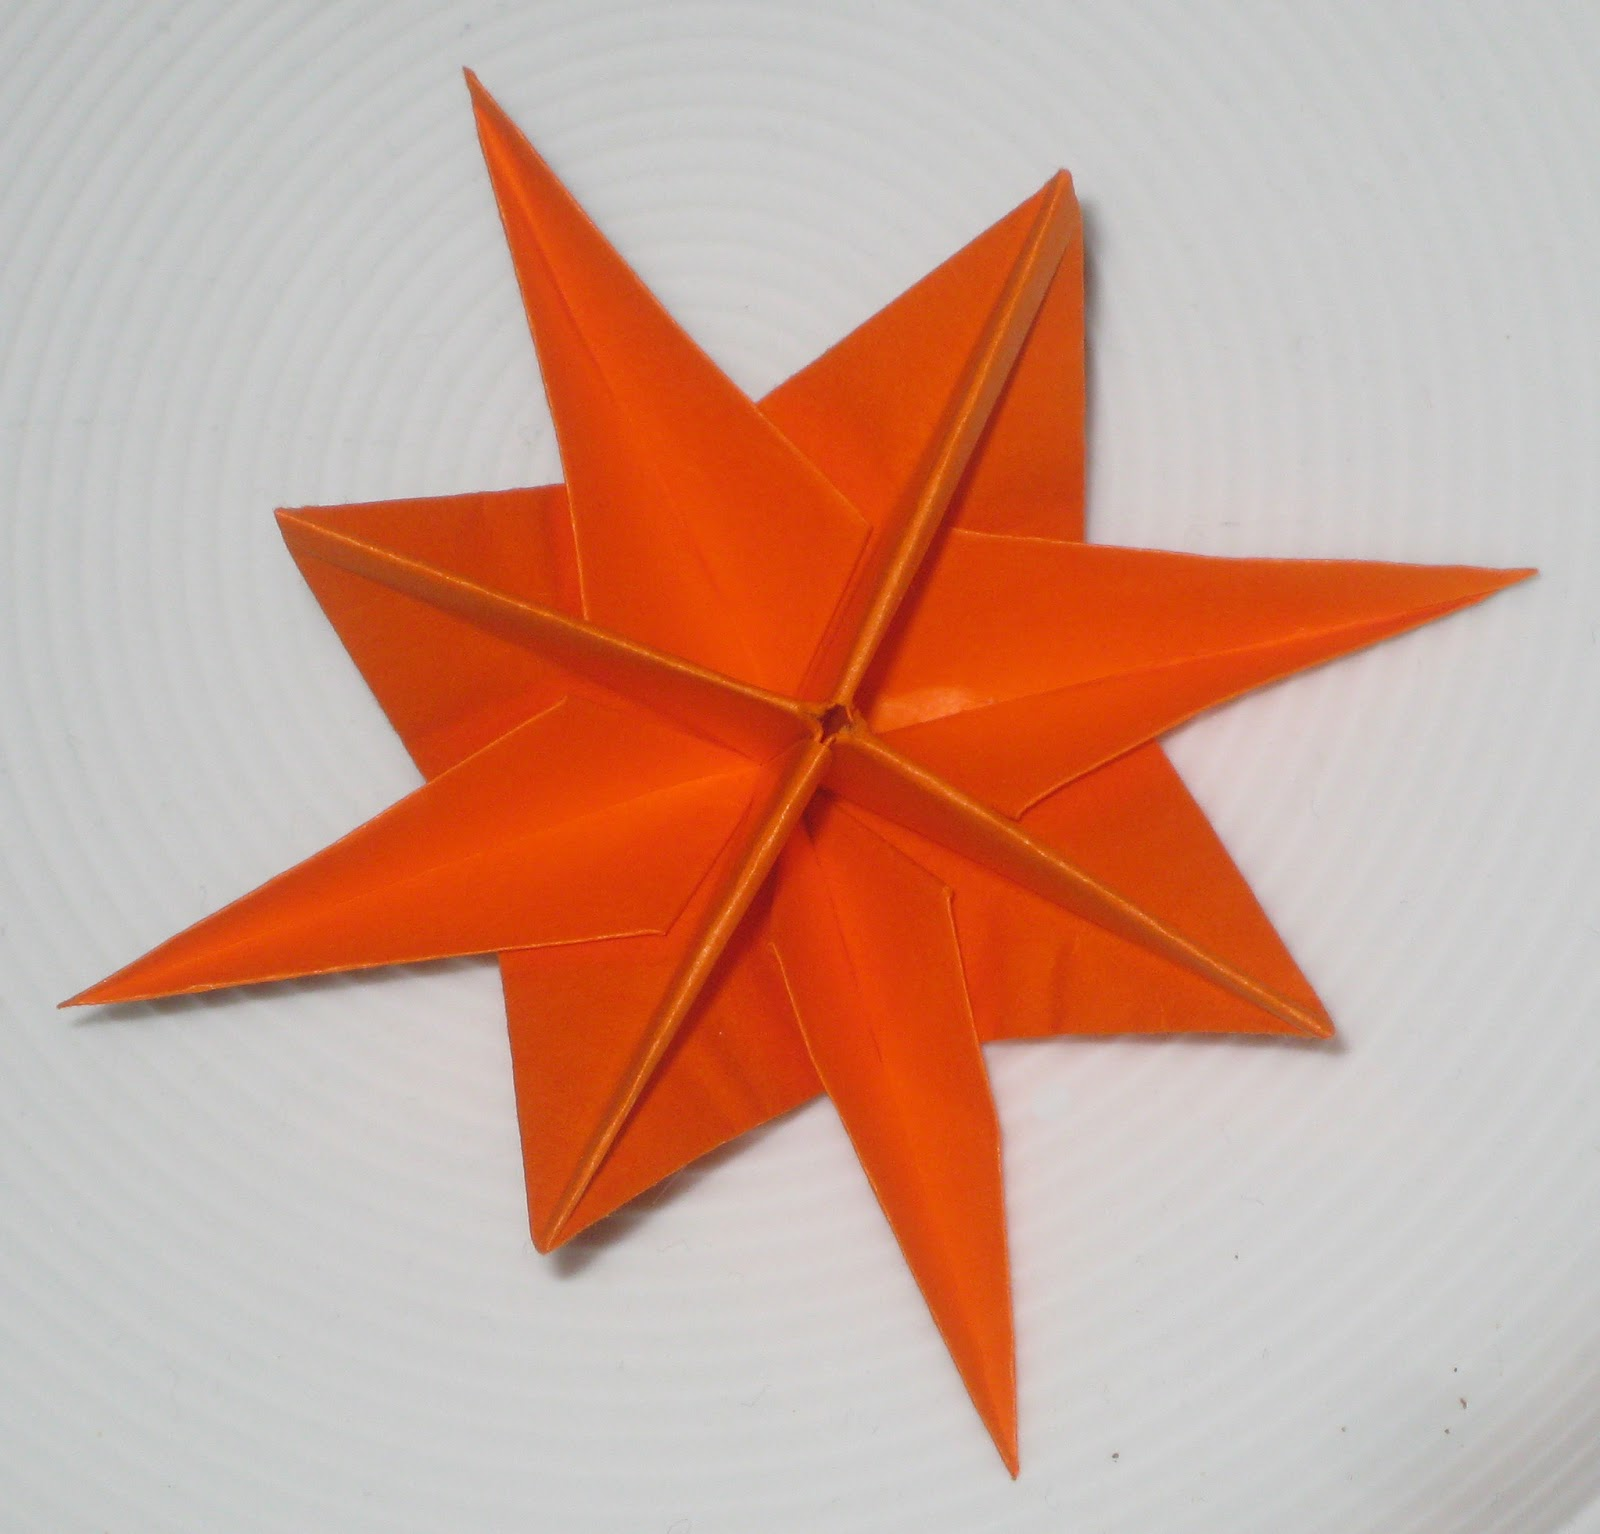 365 Days of Stargazing: 202. Orange Origami Star